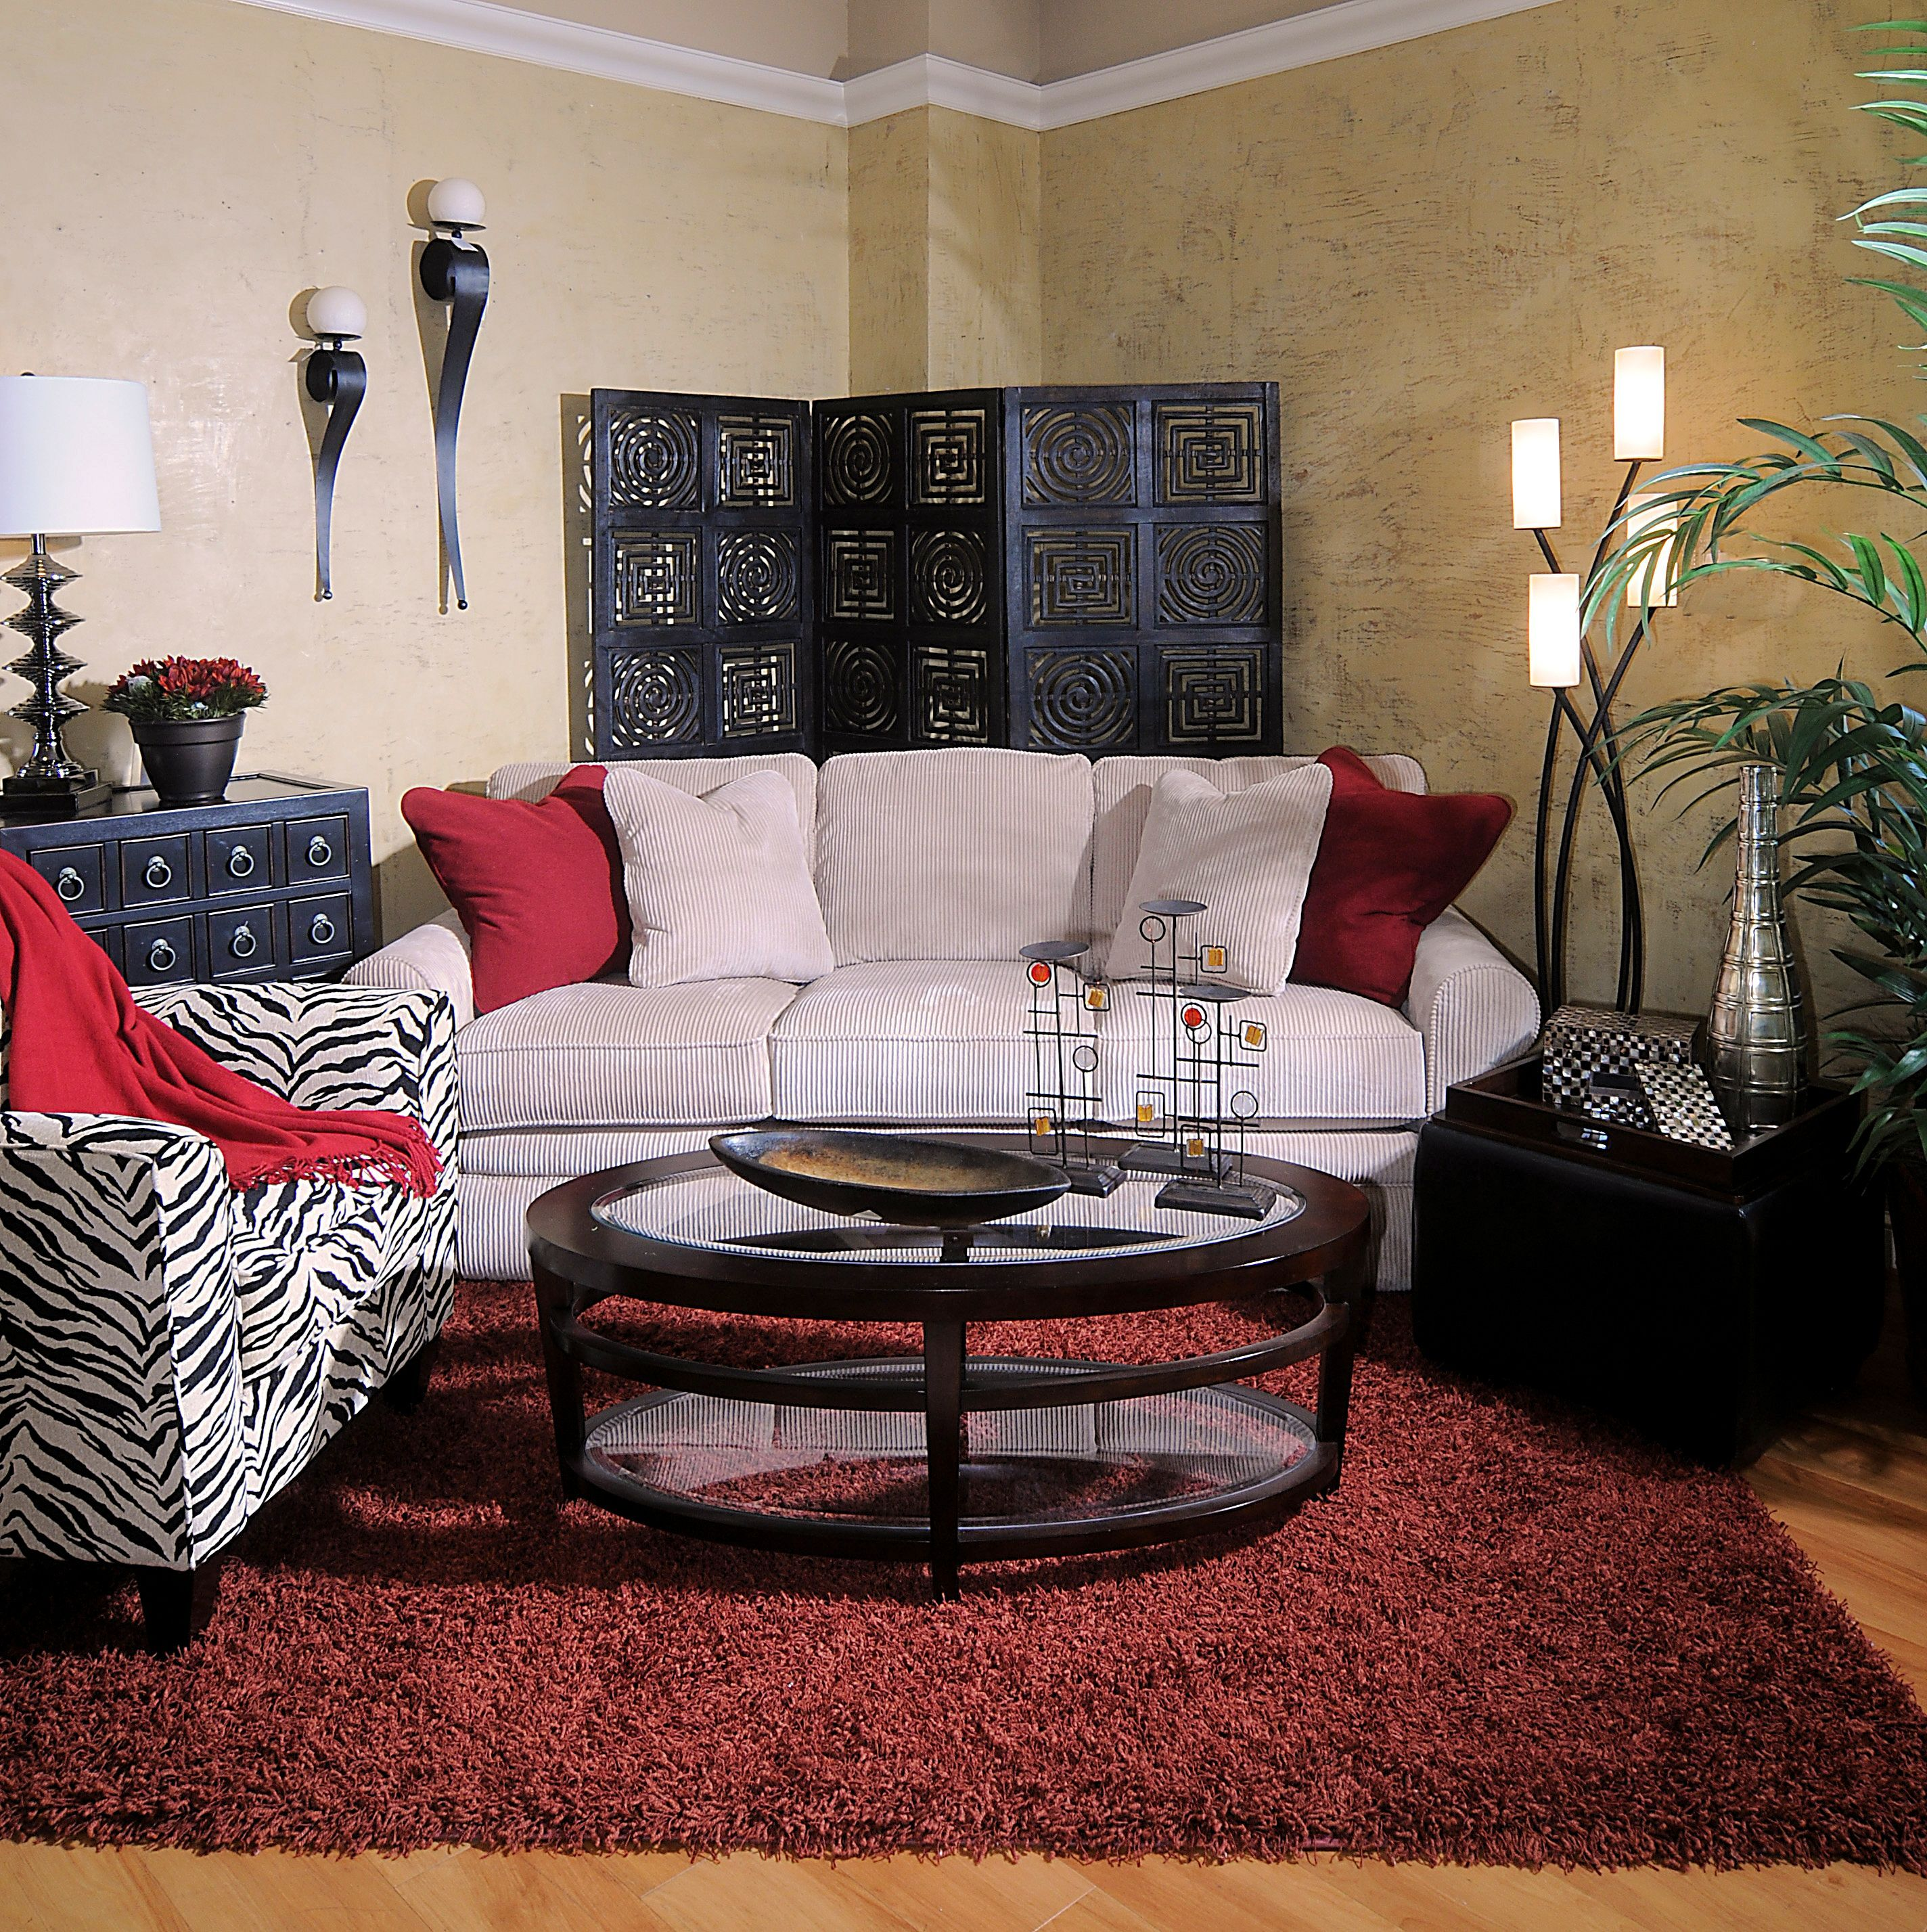 Exceptional Cool Animal Print Sofa , Best Animal Print Sofa 58 About Remodel Sofas And  Couches Set Awesome Ideas